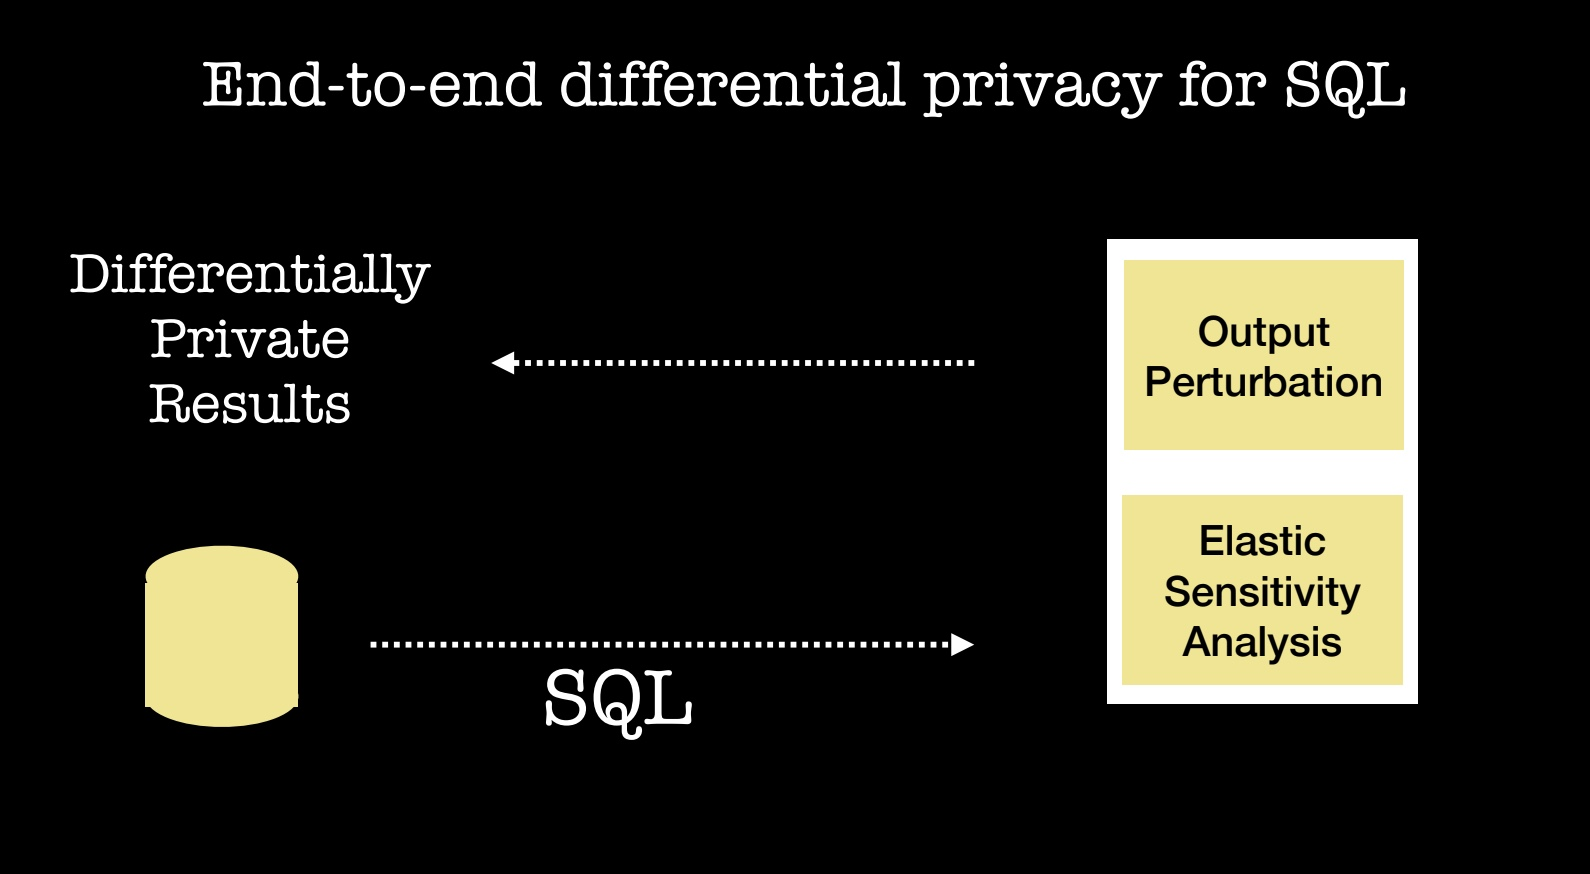 differential privacy for SQL